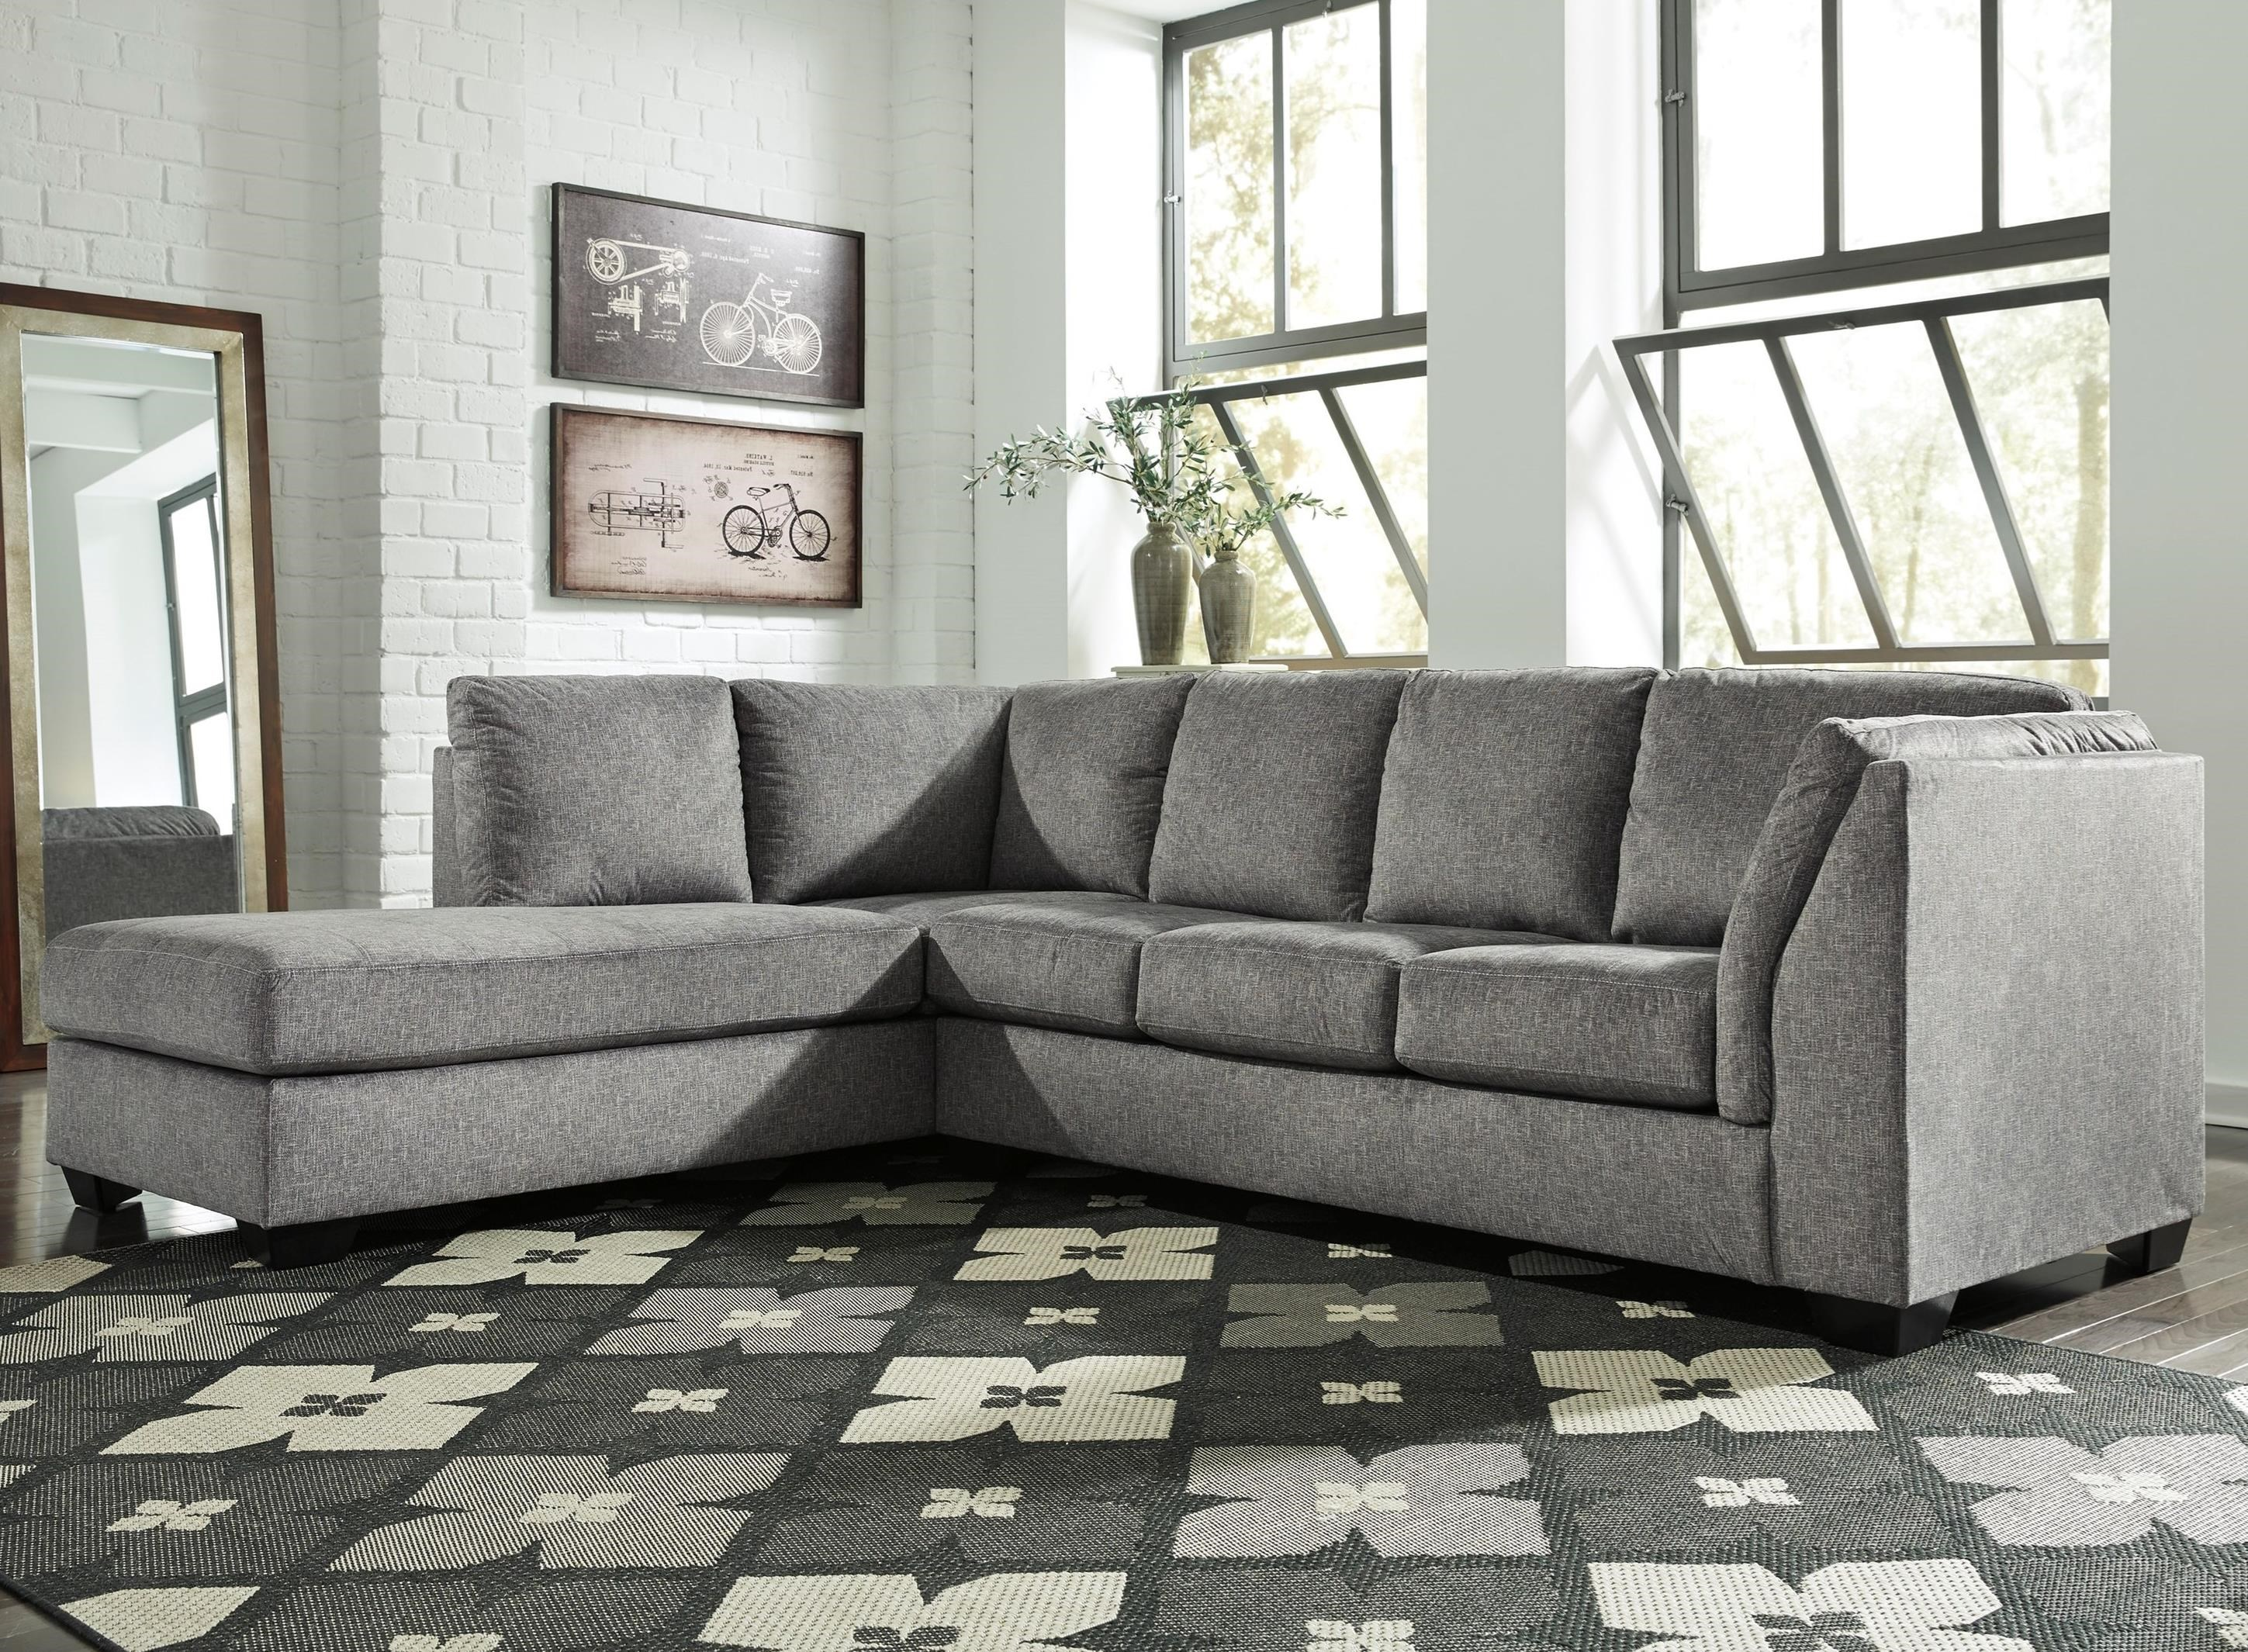 jamestown 2 piece sofa and loveseat group in gray bed into bunk beds benchcraft belcastel sectional with left chaise